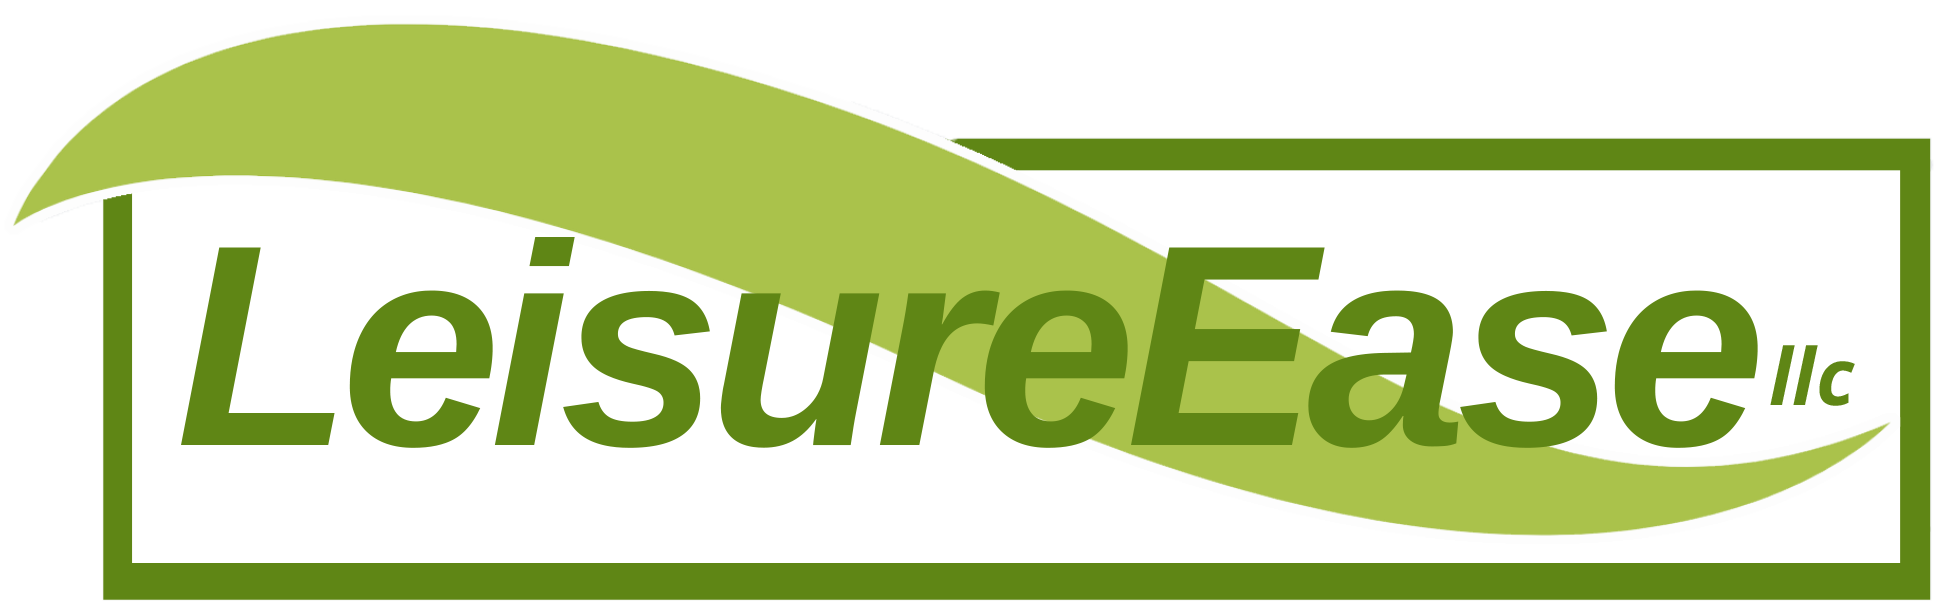 LeisureEase logo